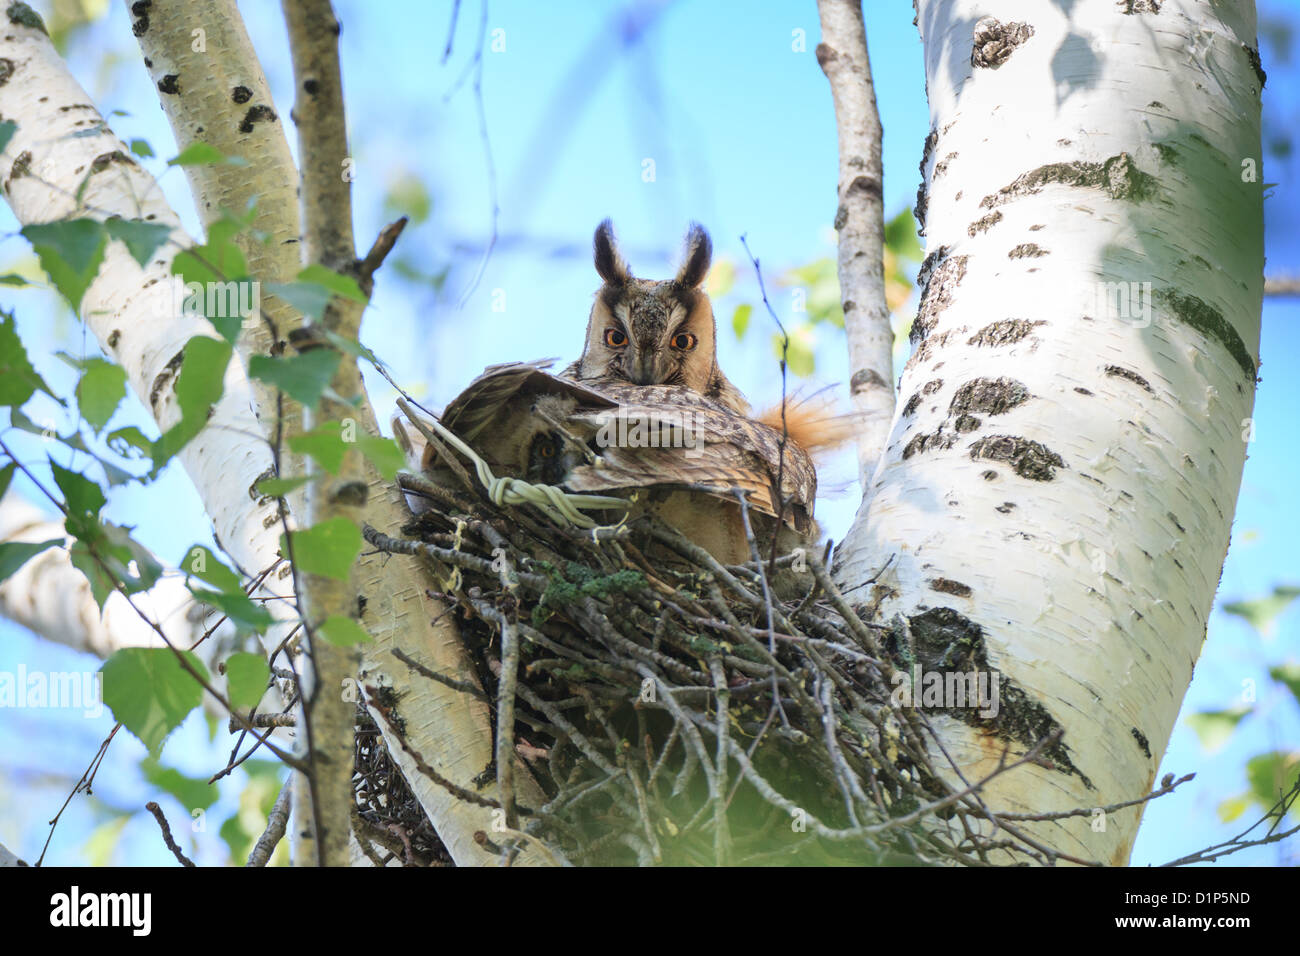 Asio otus, Long-eared Owl. Nest of a bird with eggs in the nature. Bird warms its chicks in the nest. - Stock Image